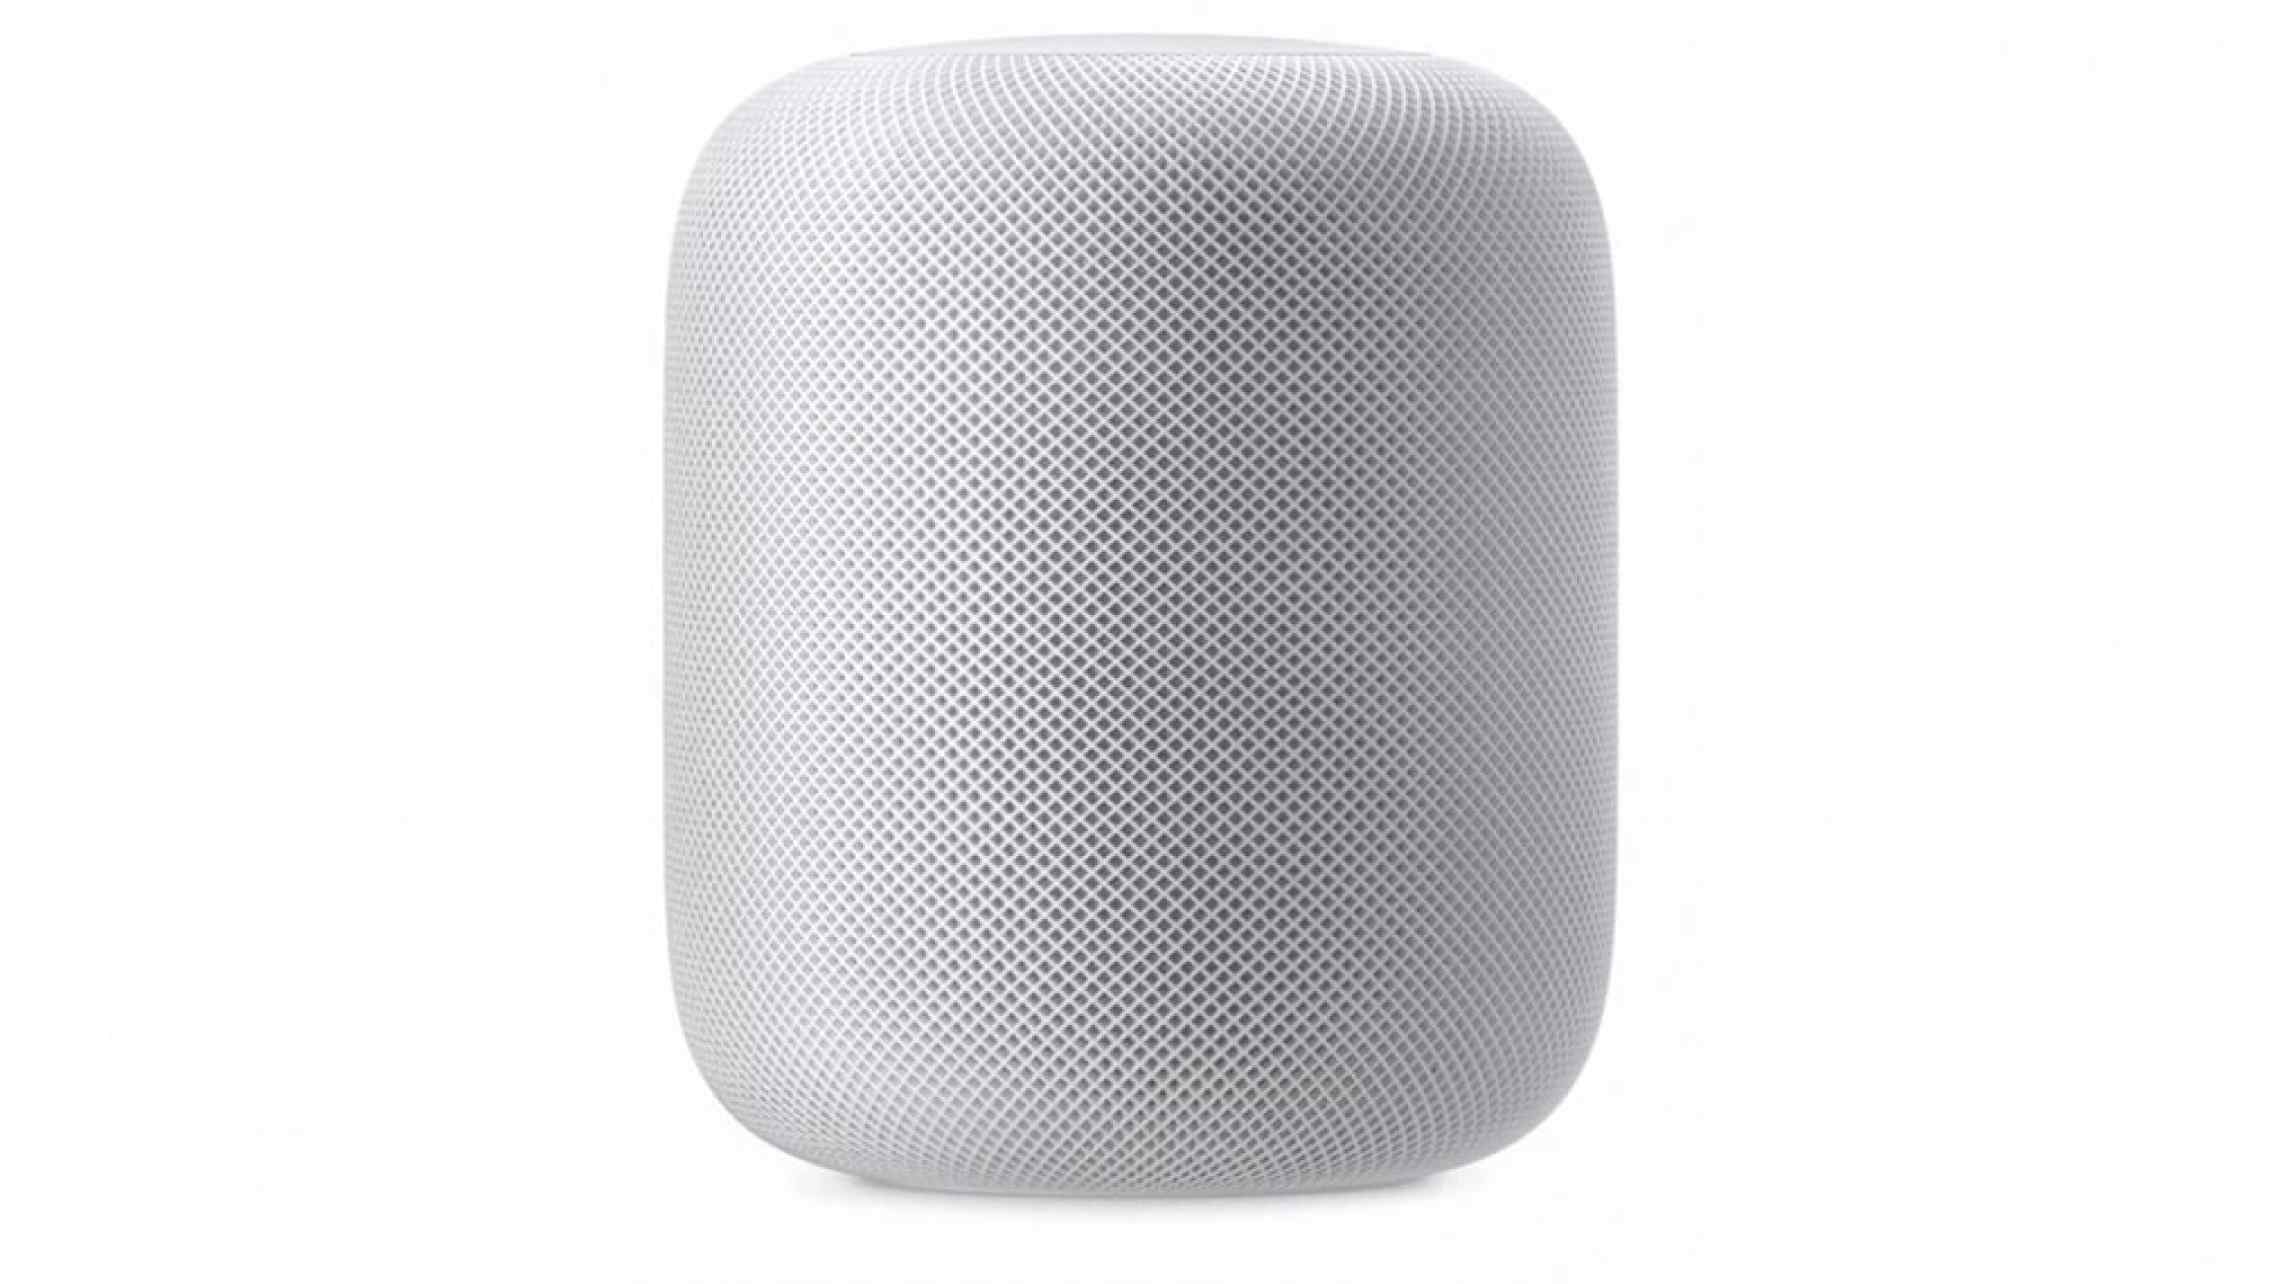 Apple HomePod - Everything we know so far price, specs